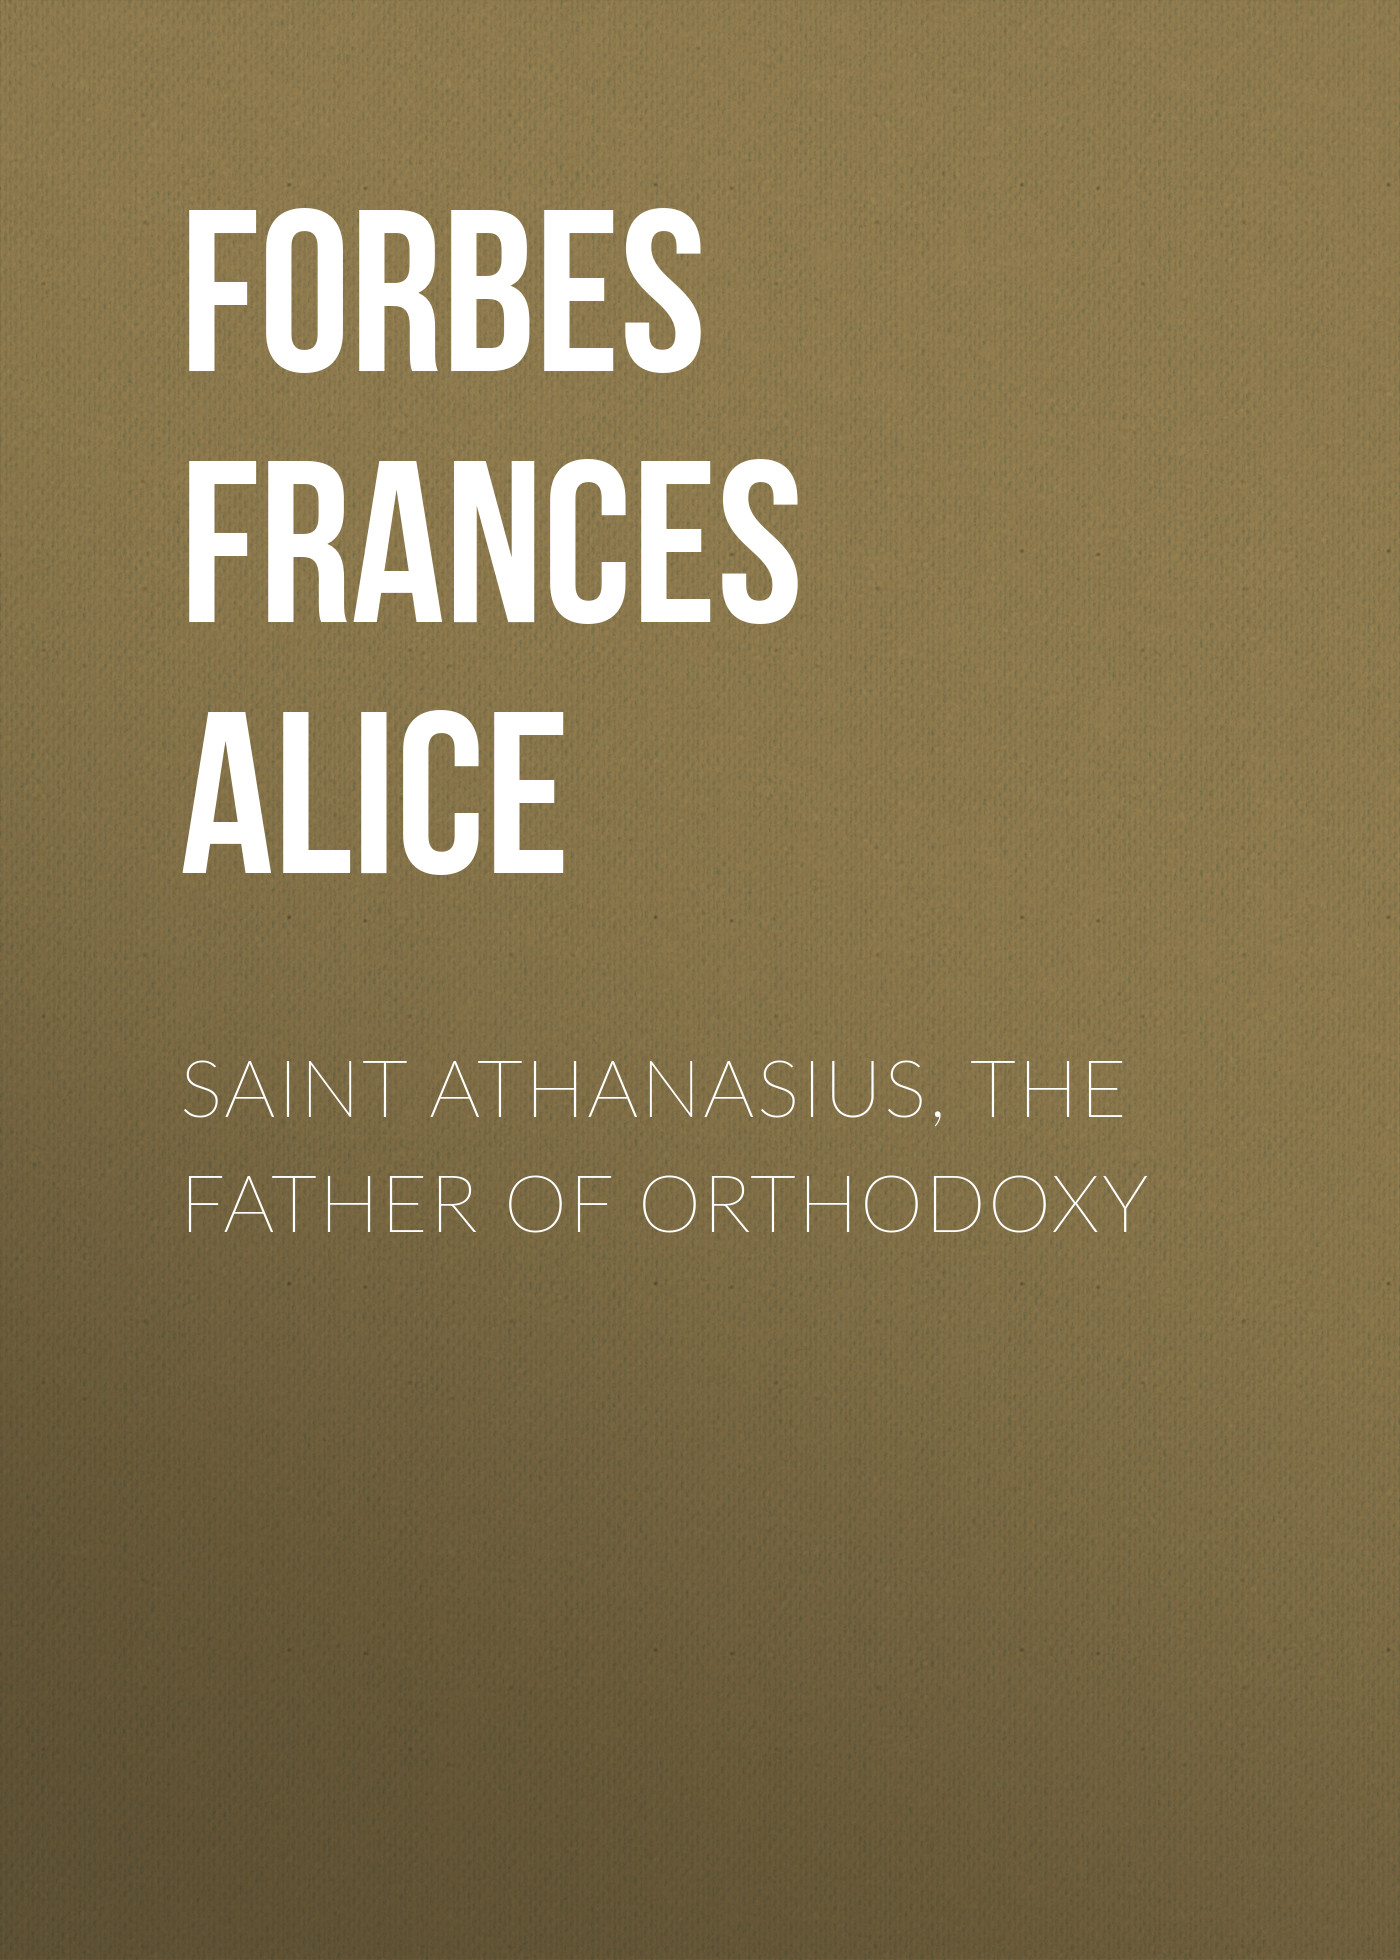 Forbes Frances Alice Saint Athanasius, the Father of Orthodoxy